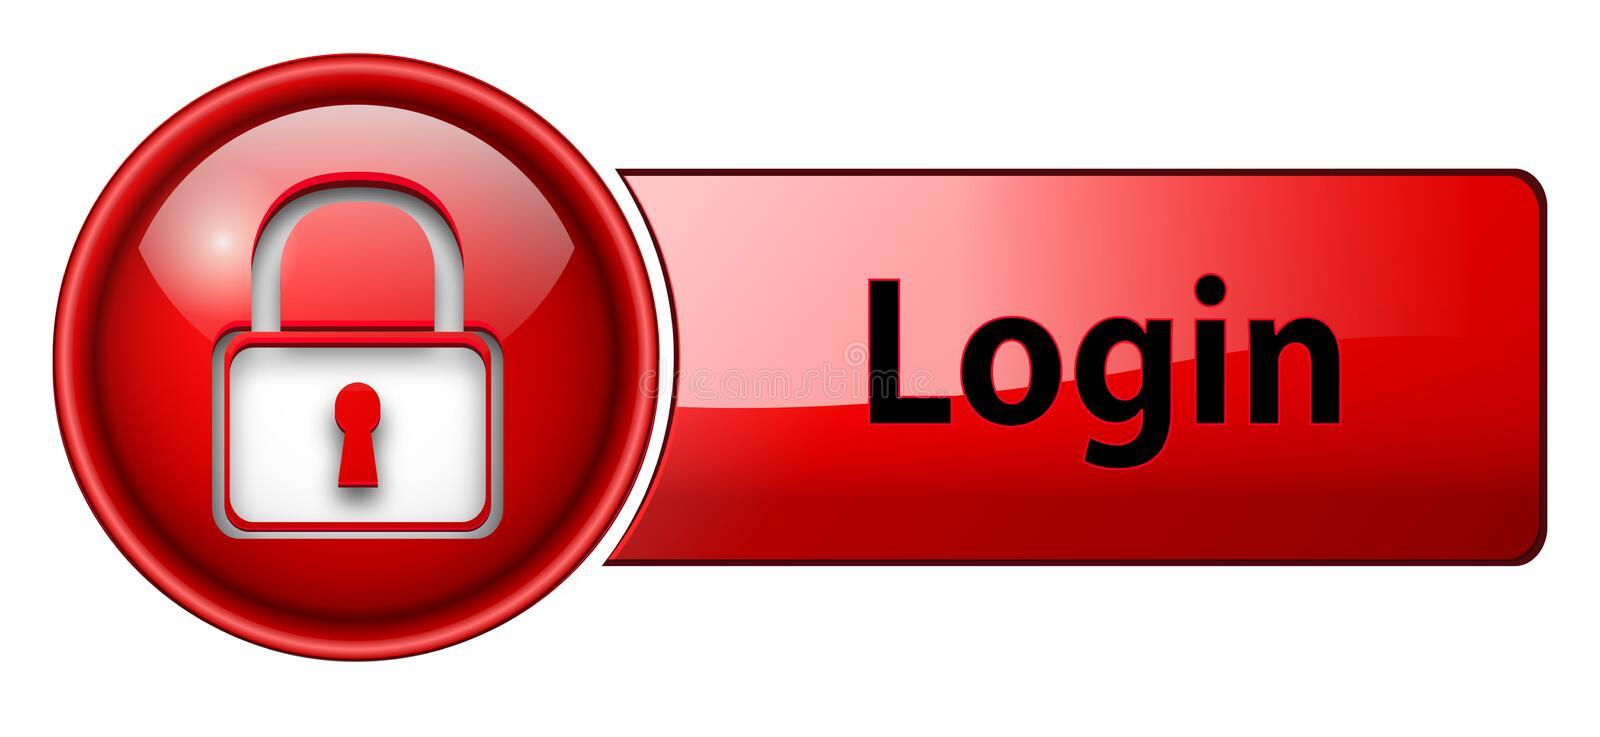 Login icon button. Login, padlock icon button, red glossy, vector